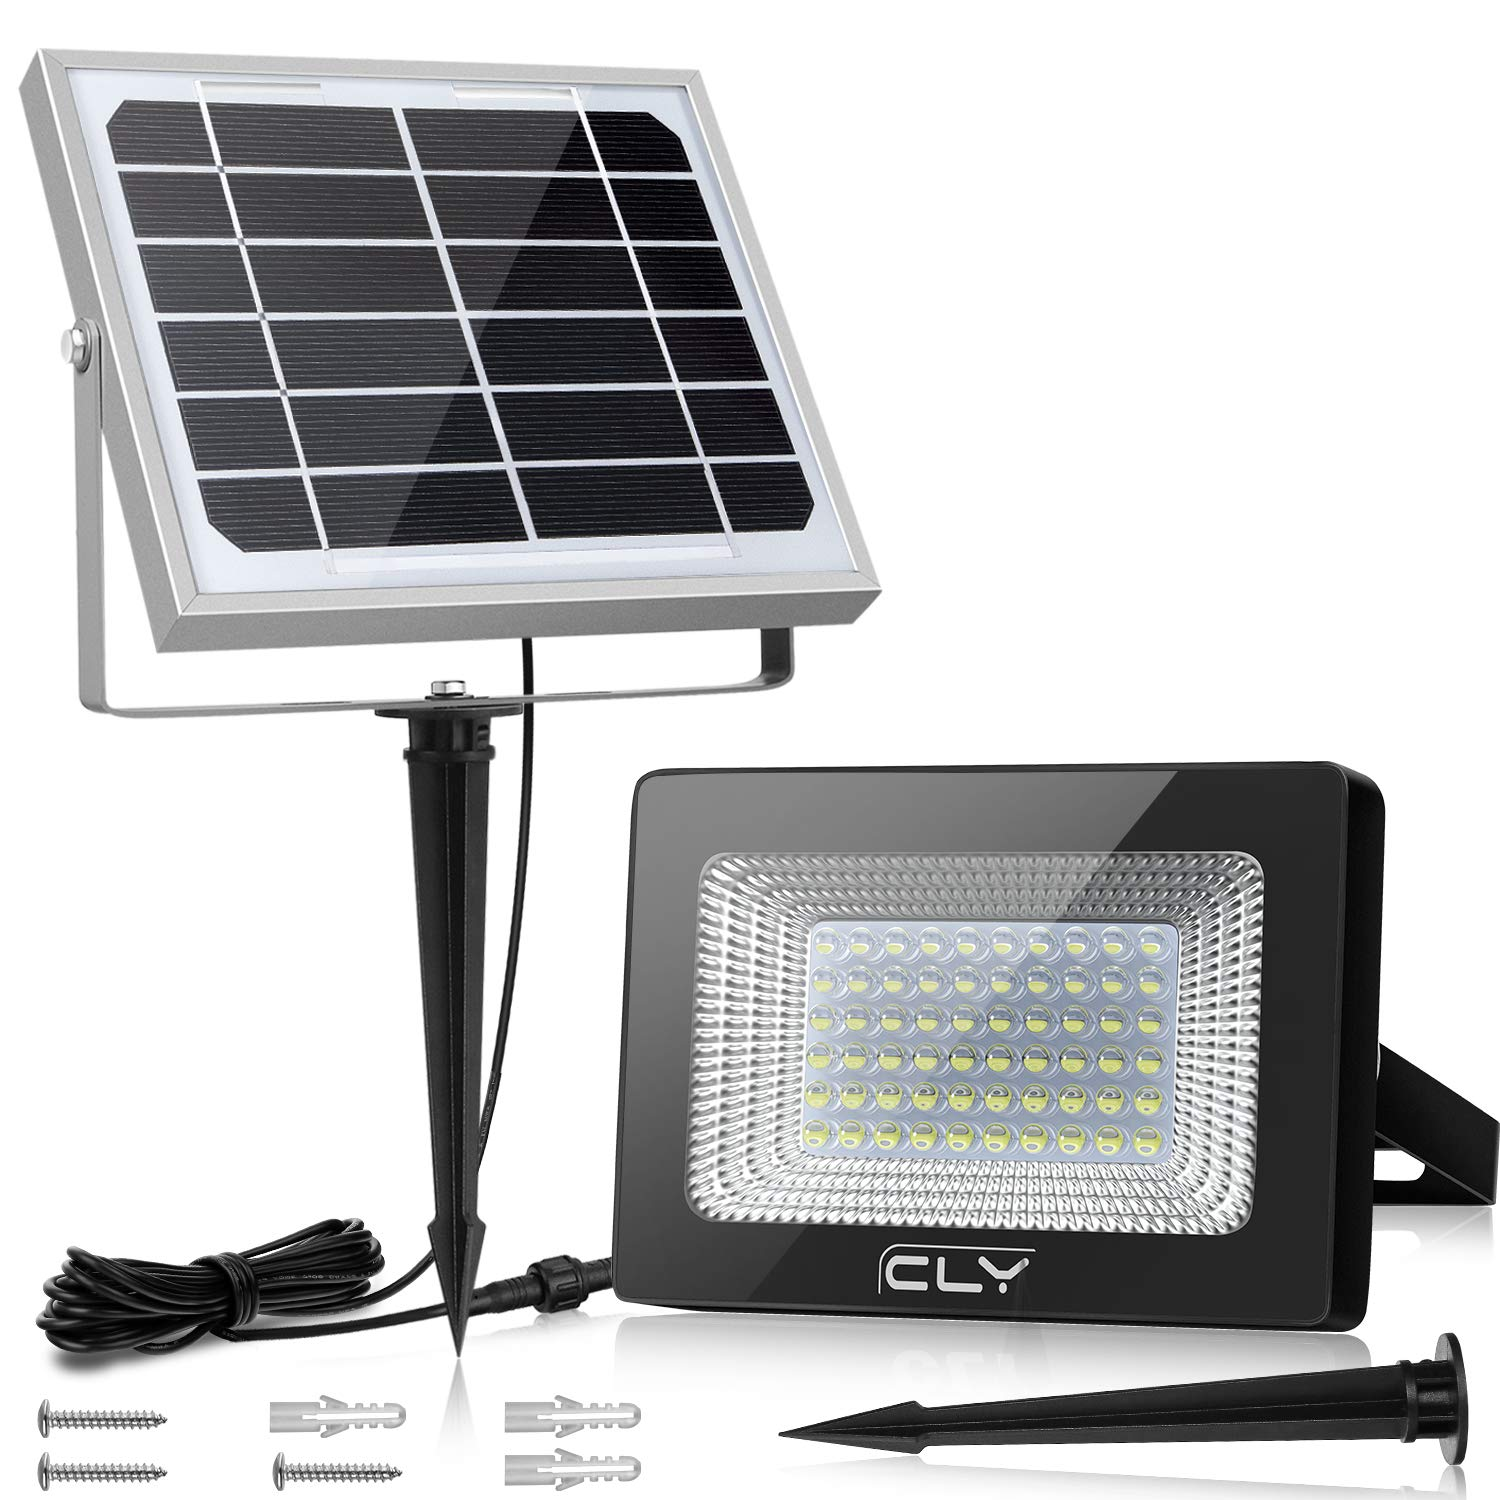 CLY LED 60 Solar Lights